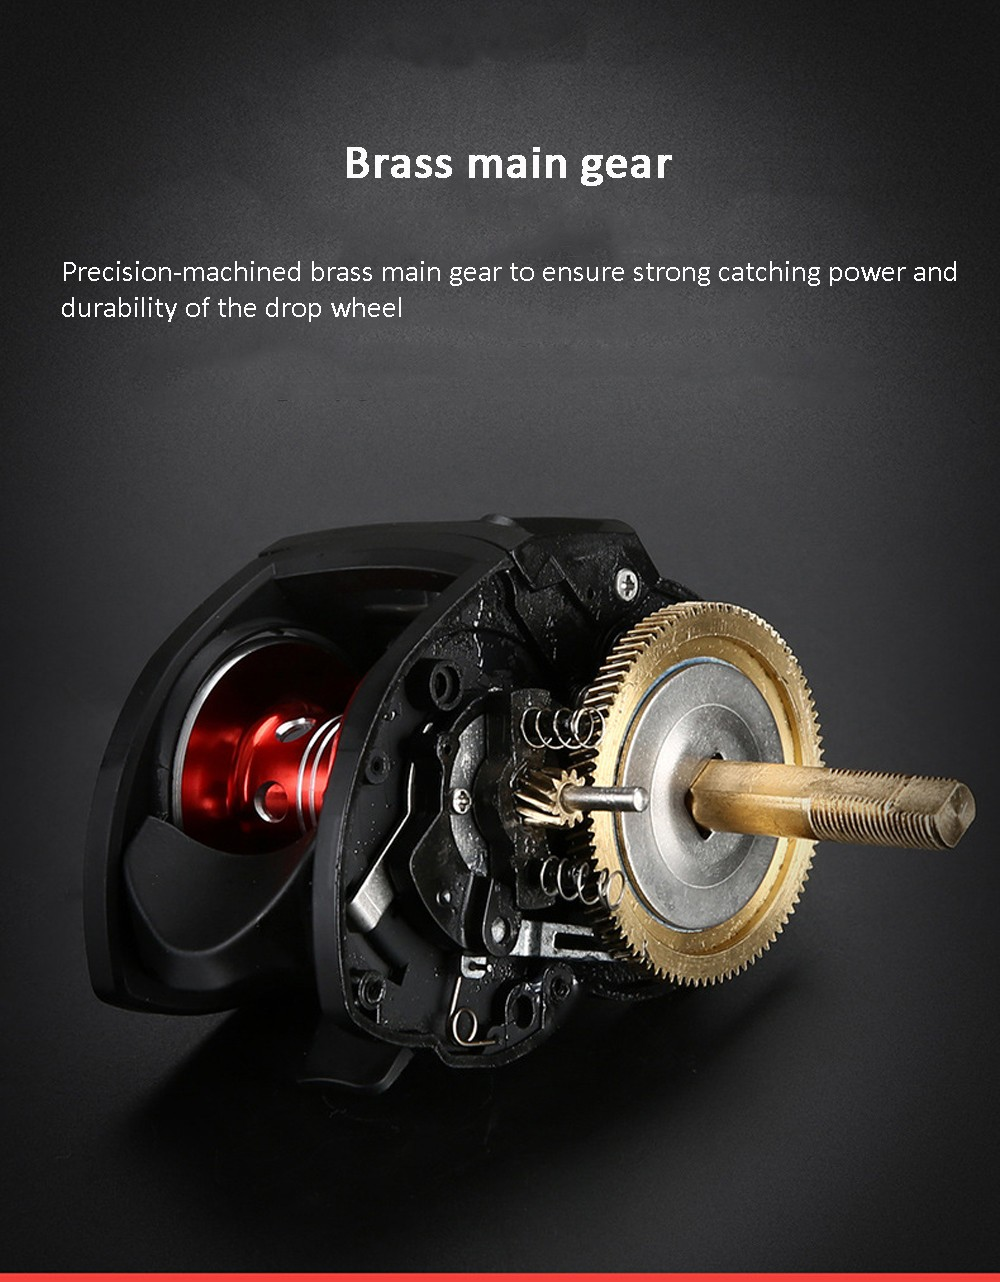 High Speed 8.1:1 Gear Ratio Fishing Reel Rotary Wing Side Cover 22-speed Magnetic Brake System Aluminum Alloy Linear Cup - Black Left Hand